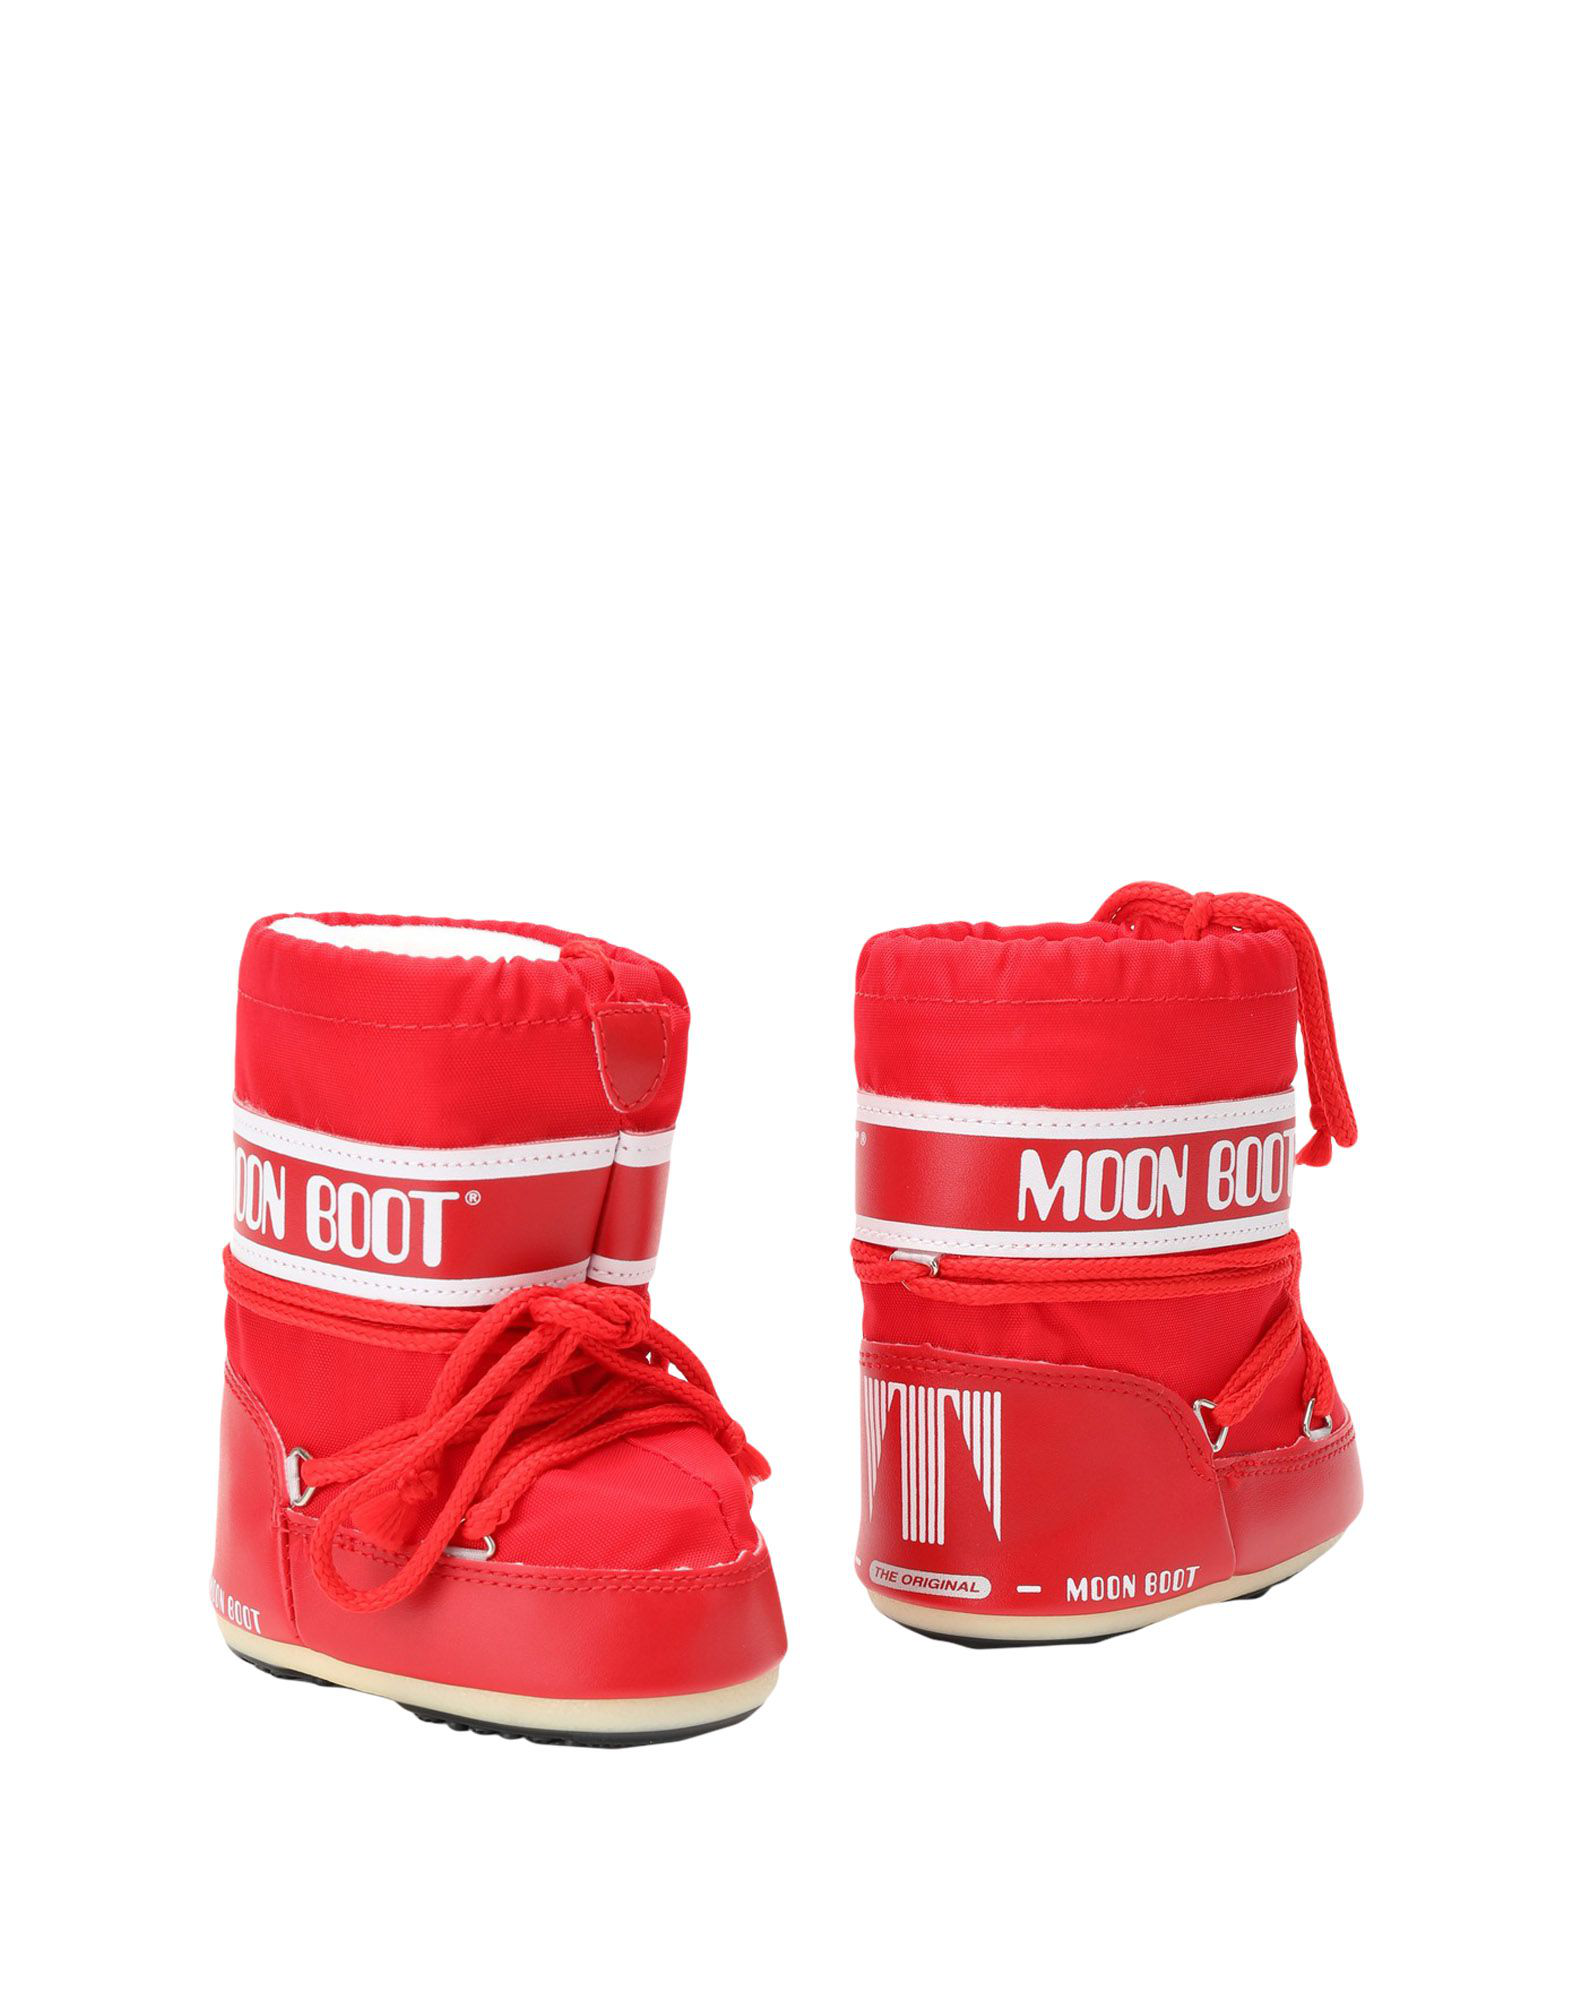 Moon Boot Ankle Boots In Red